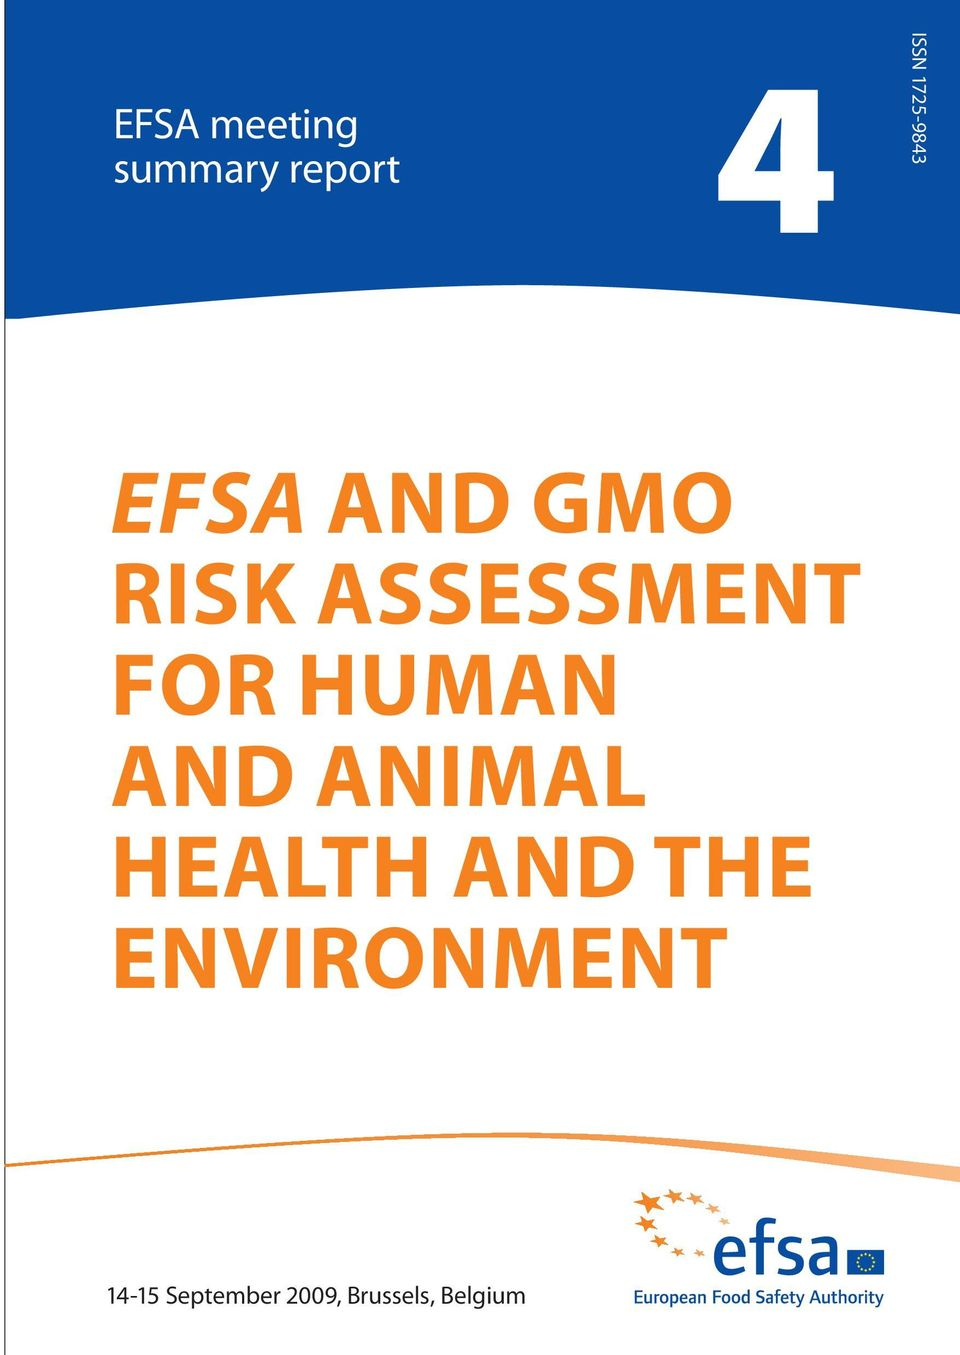 FOR HUMAN AND ANIMAL HEALTH AND THE